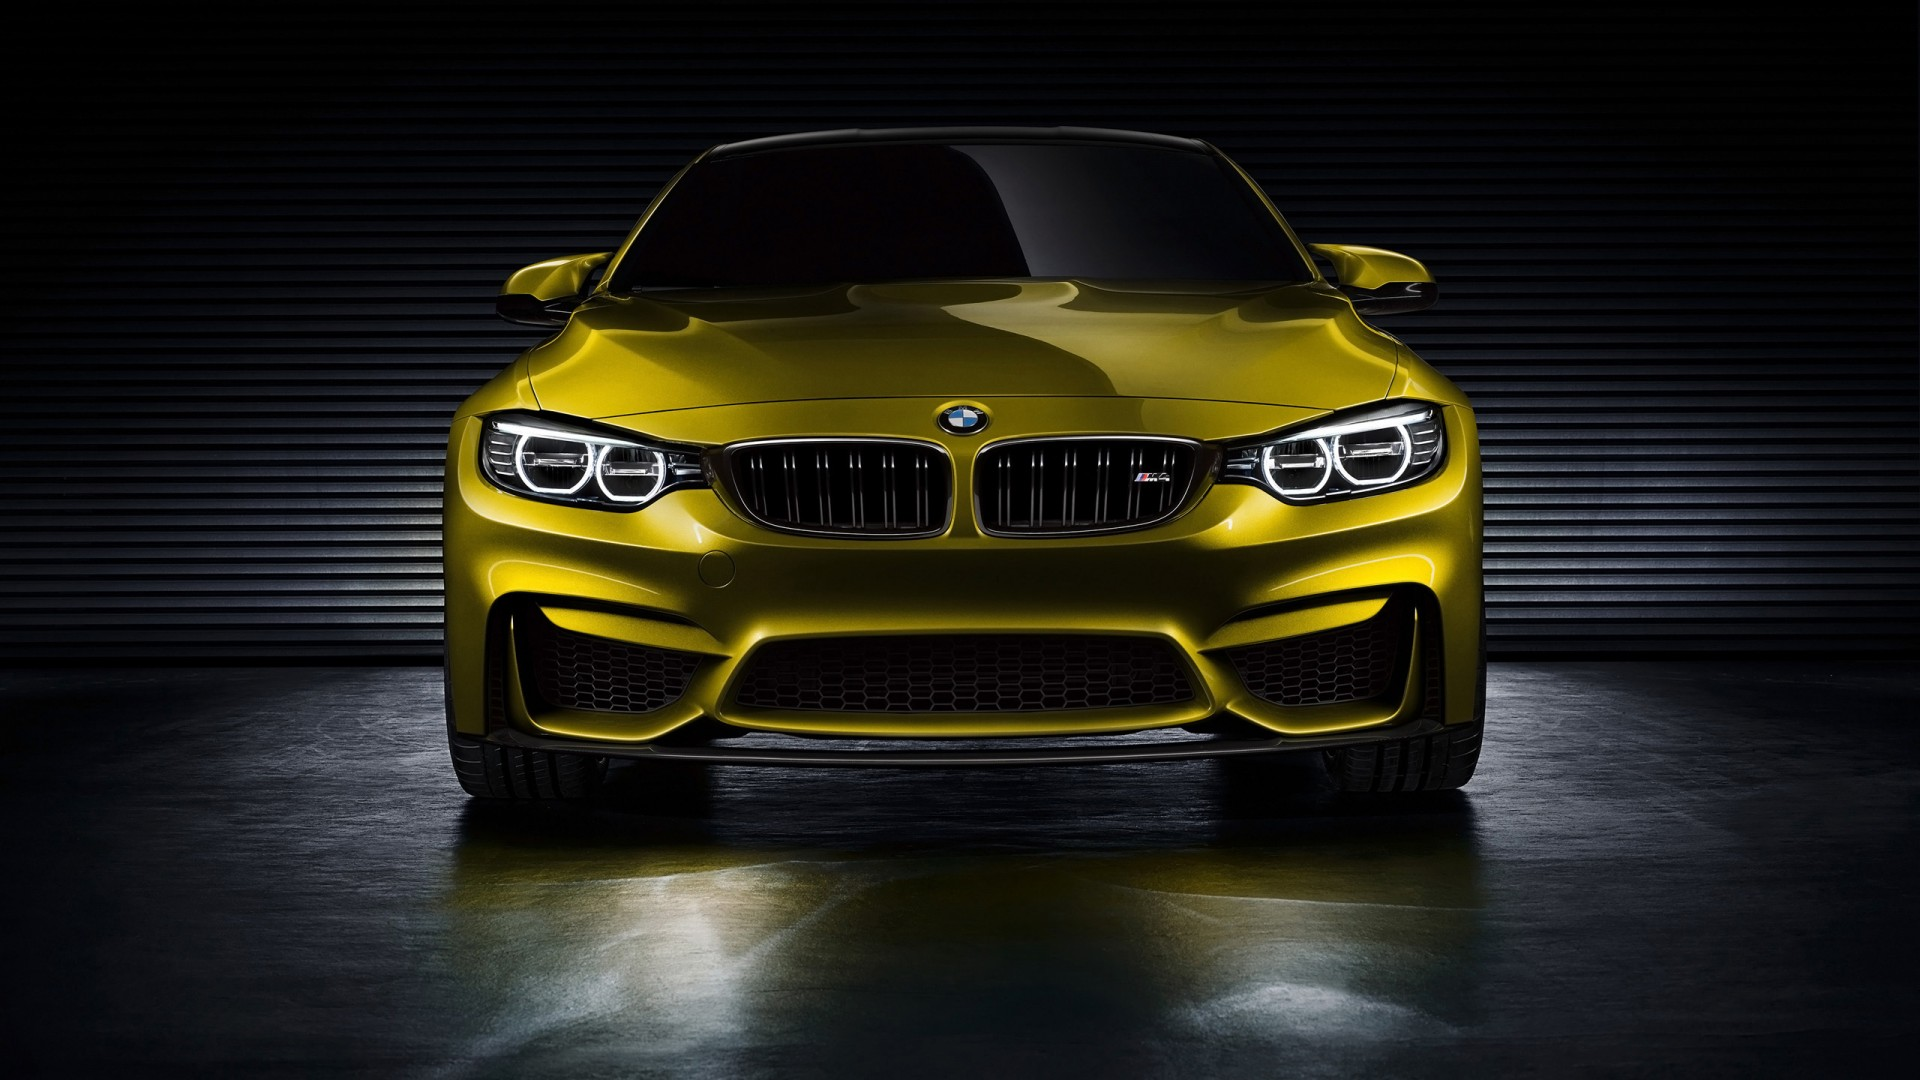 2013 BMW M4 Coupe Concept Wallpaper | HD Car Wallpapers